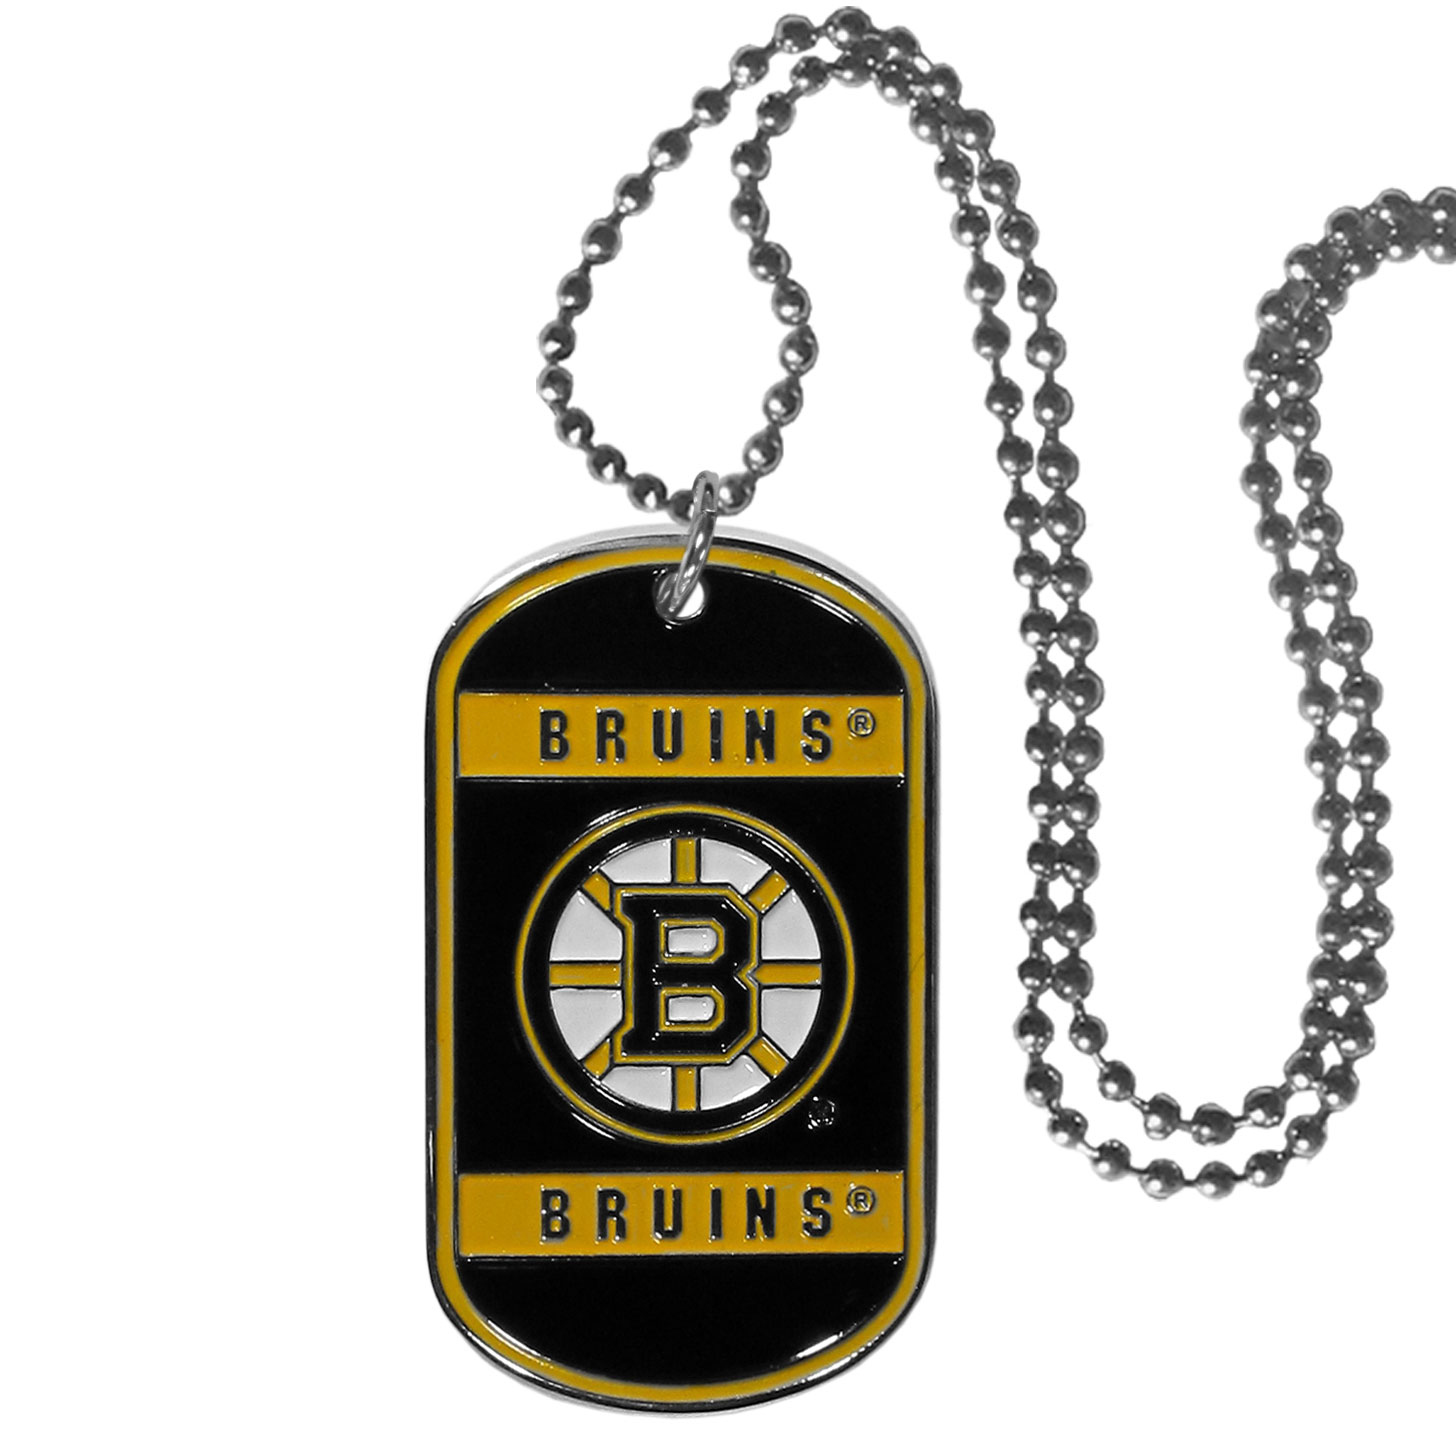 Boston Bruins® Tag Necklace - Expertly crafted Boston Bruins® tag necklaces featuring fine detailing and a hand enameled finish with chrome accents. 26 inch chain.